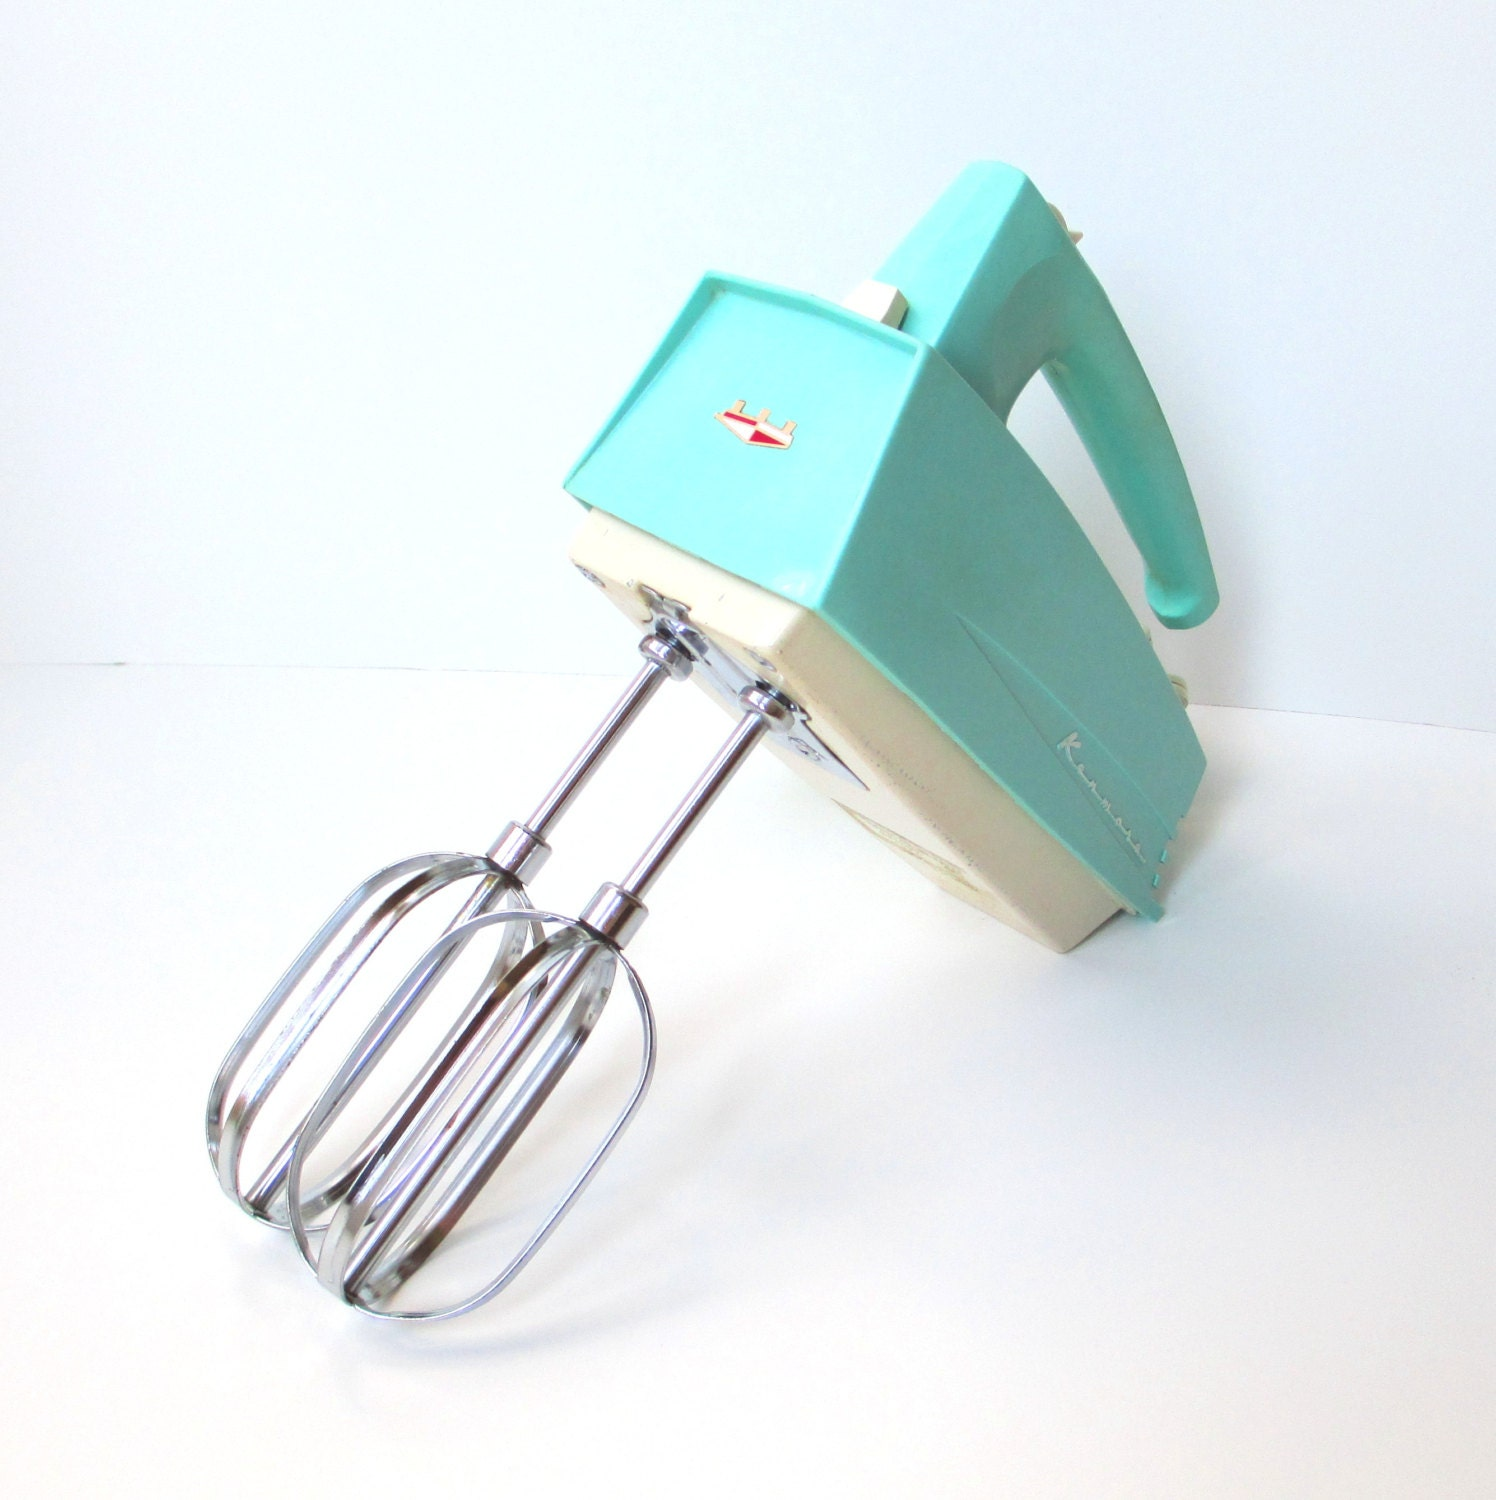 Electric Hand Mixer ~ Vintage hand mixer retro turquoise kitchen kenmore electric